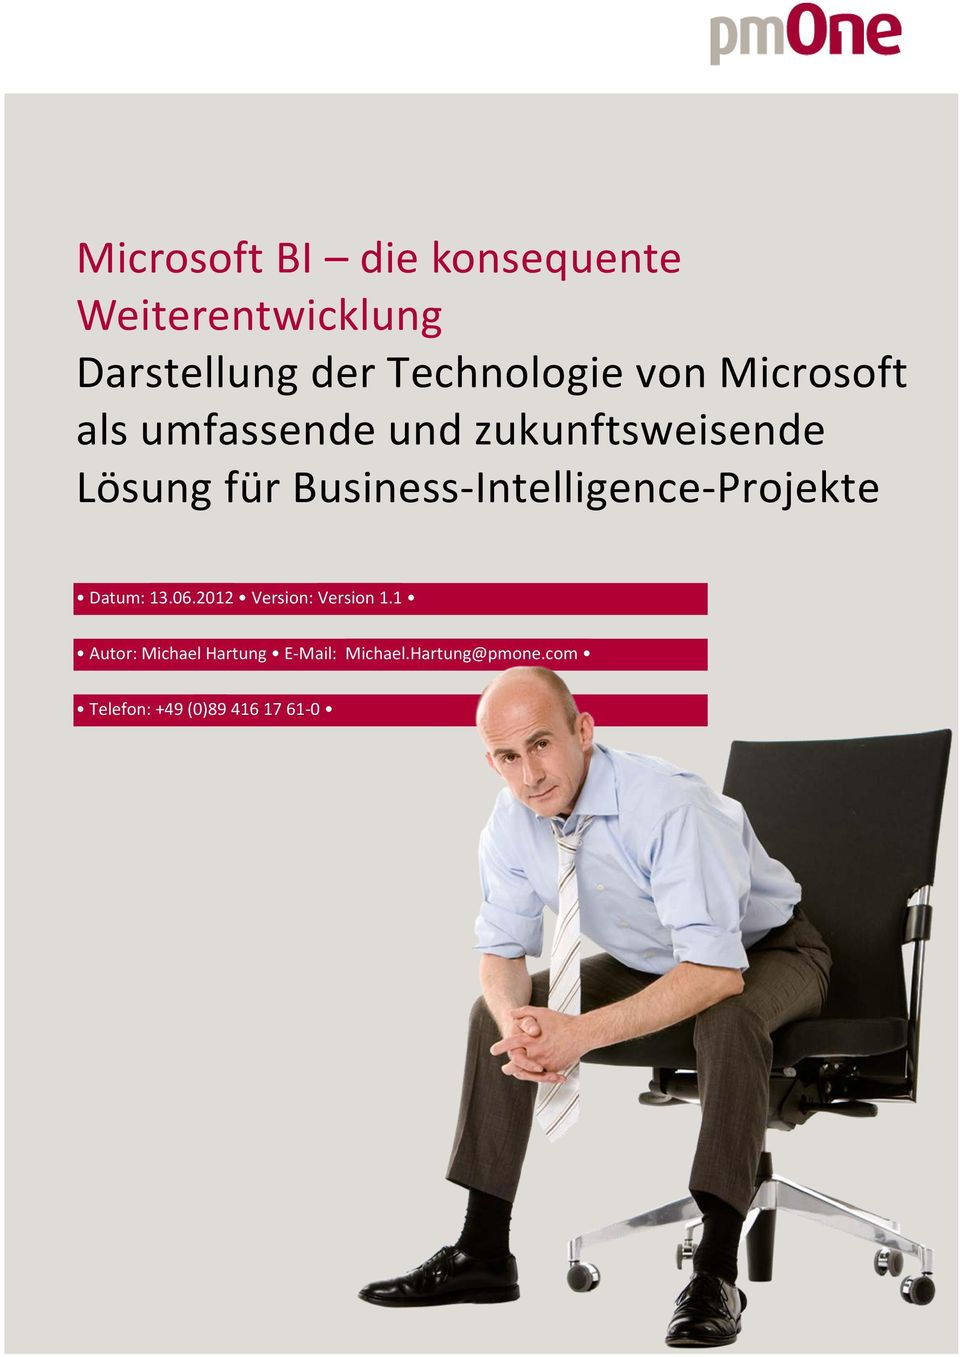 Business-Intelligence-Projekte Datum: 13.06.2012 Version: Version 1.